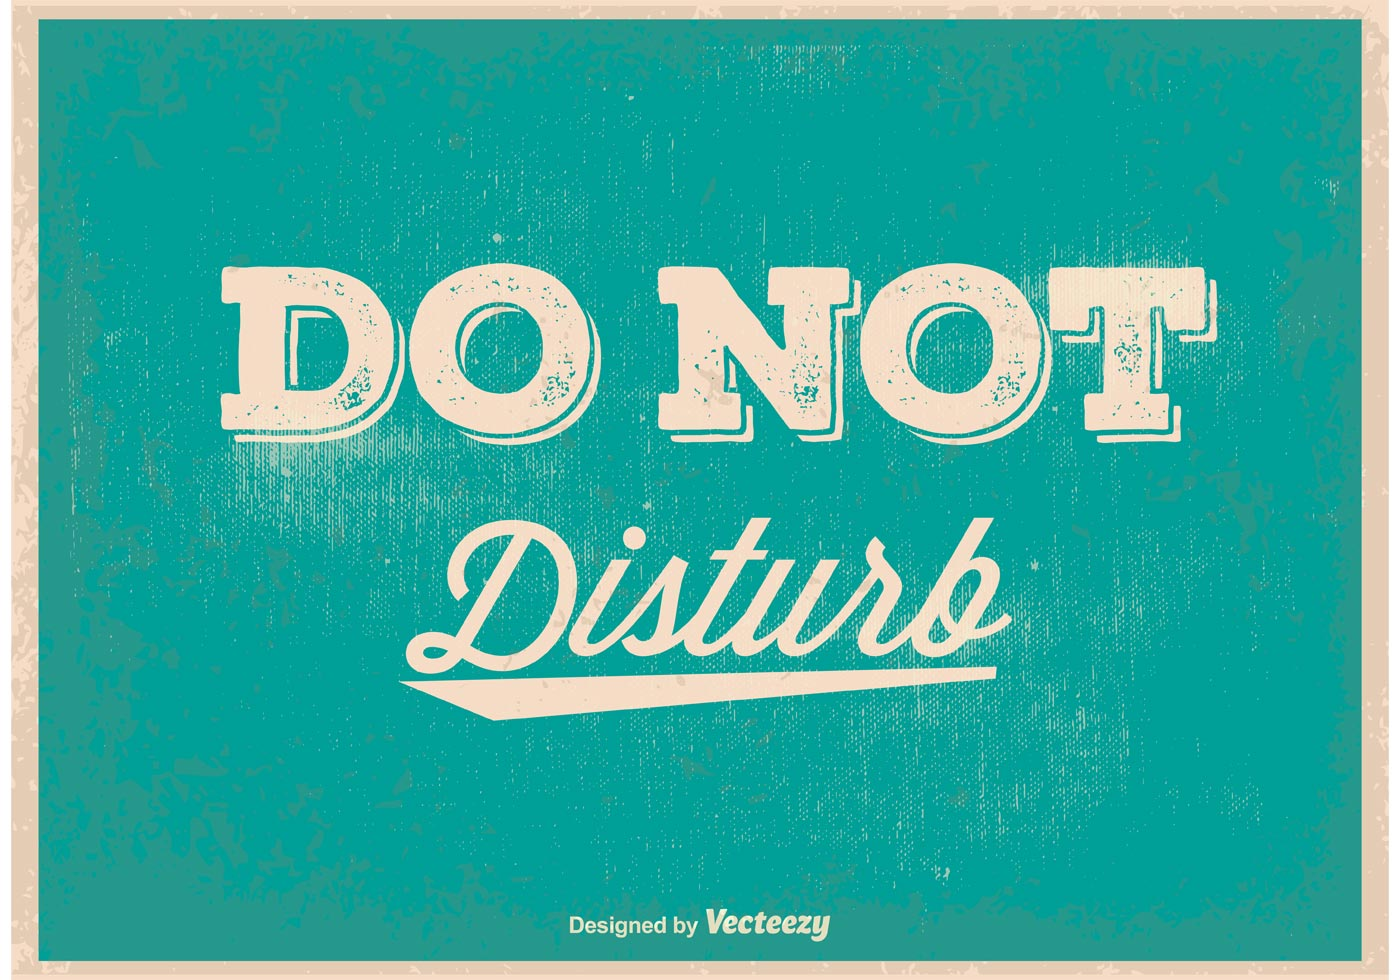 what not to do What not to do a seasoned entrepreneur reveals the 17 most common mistakes startups make and how to avoid them -- plus, the 5 things you must do to ensure success next article.